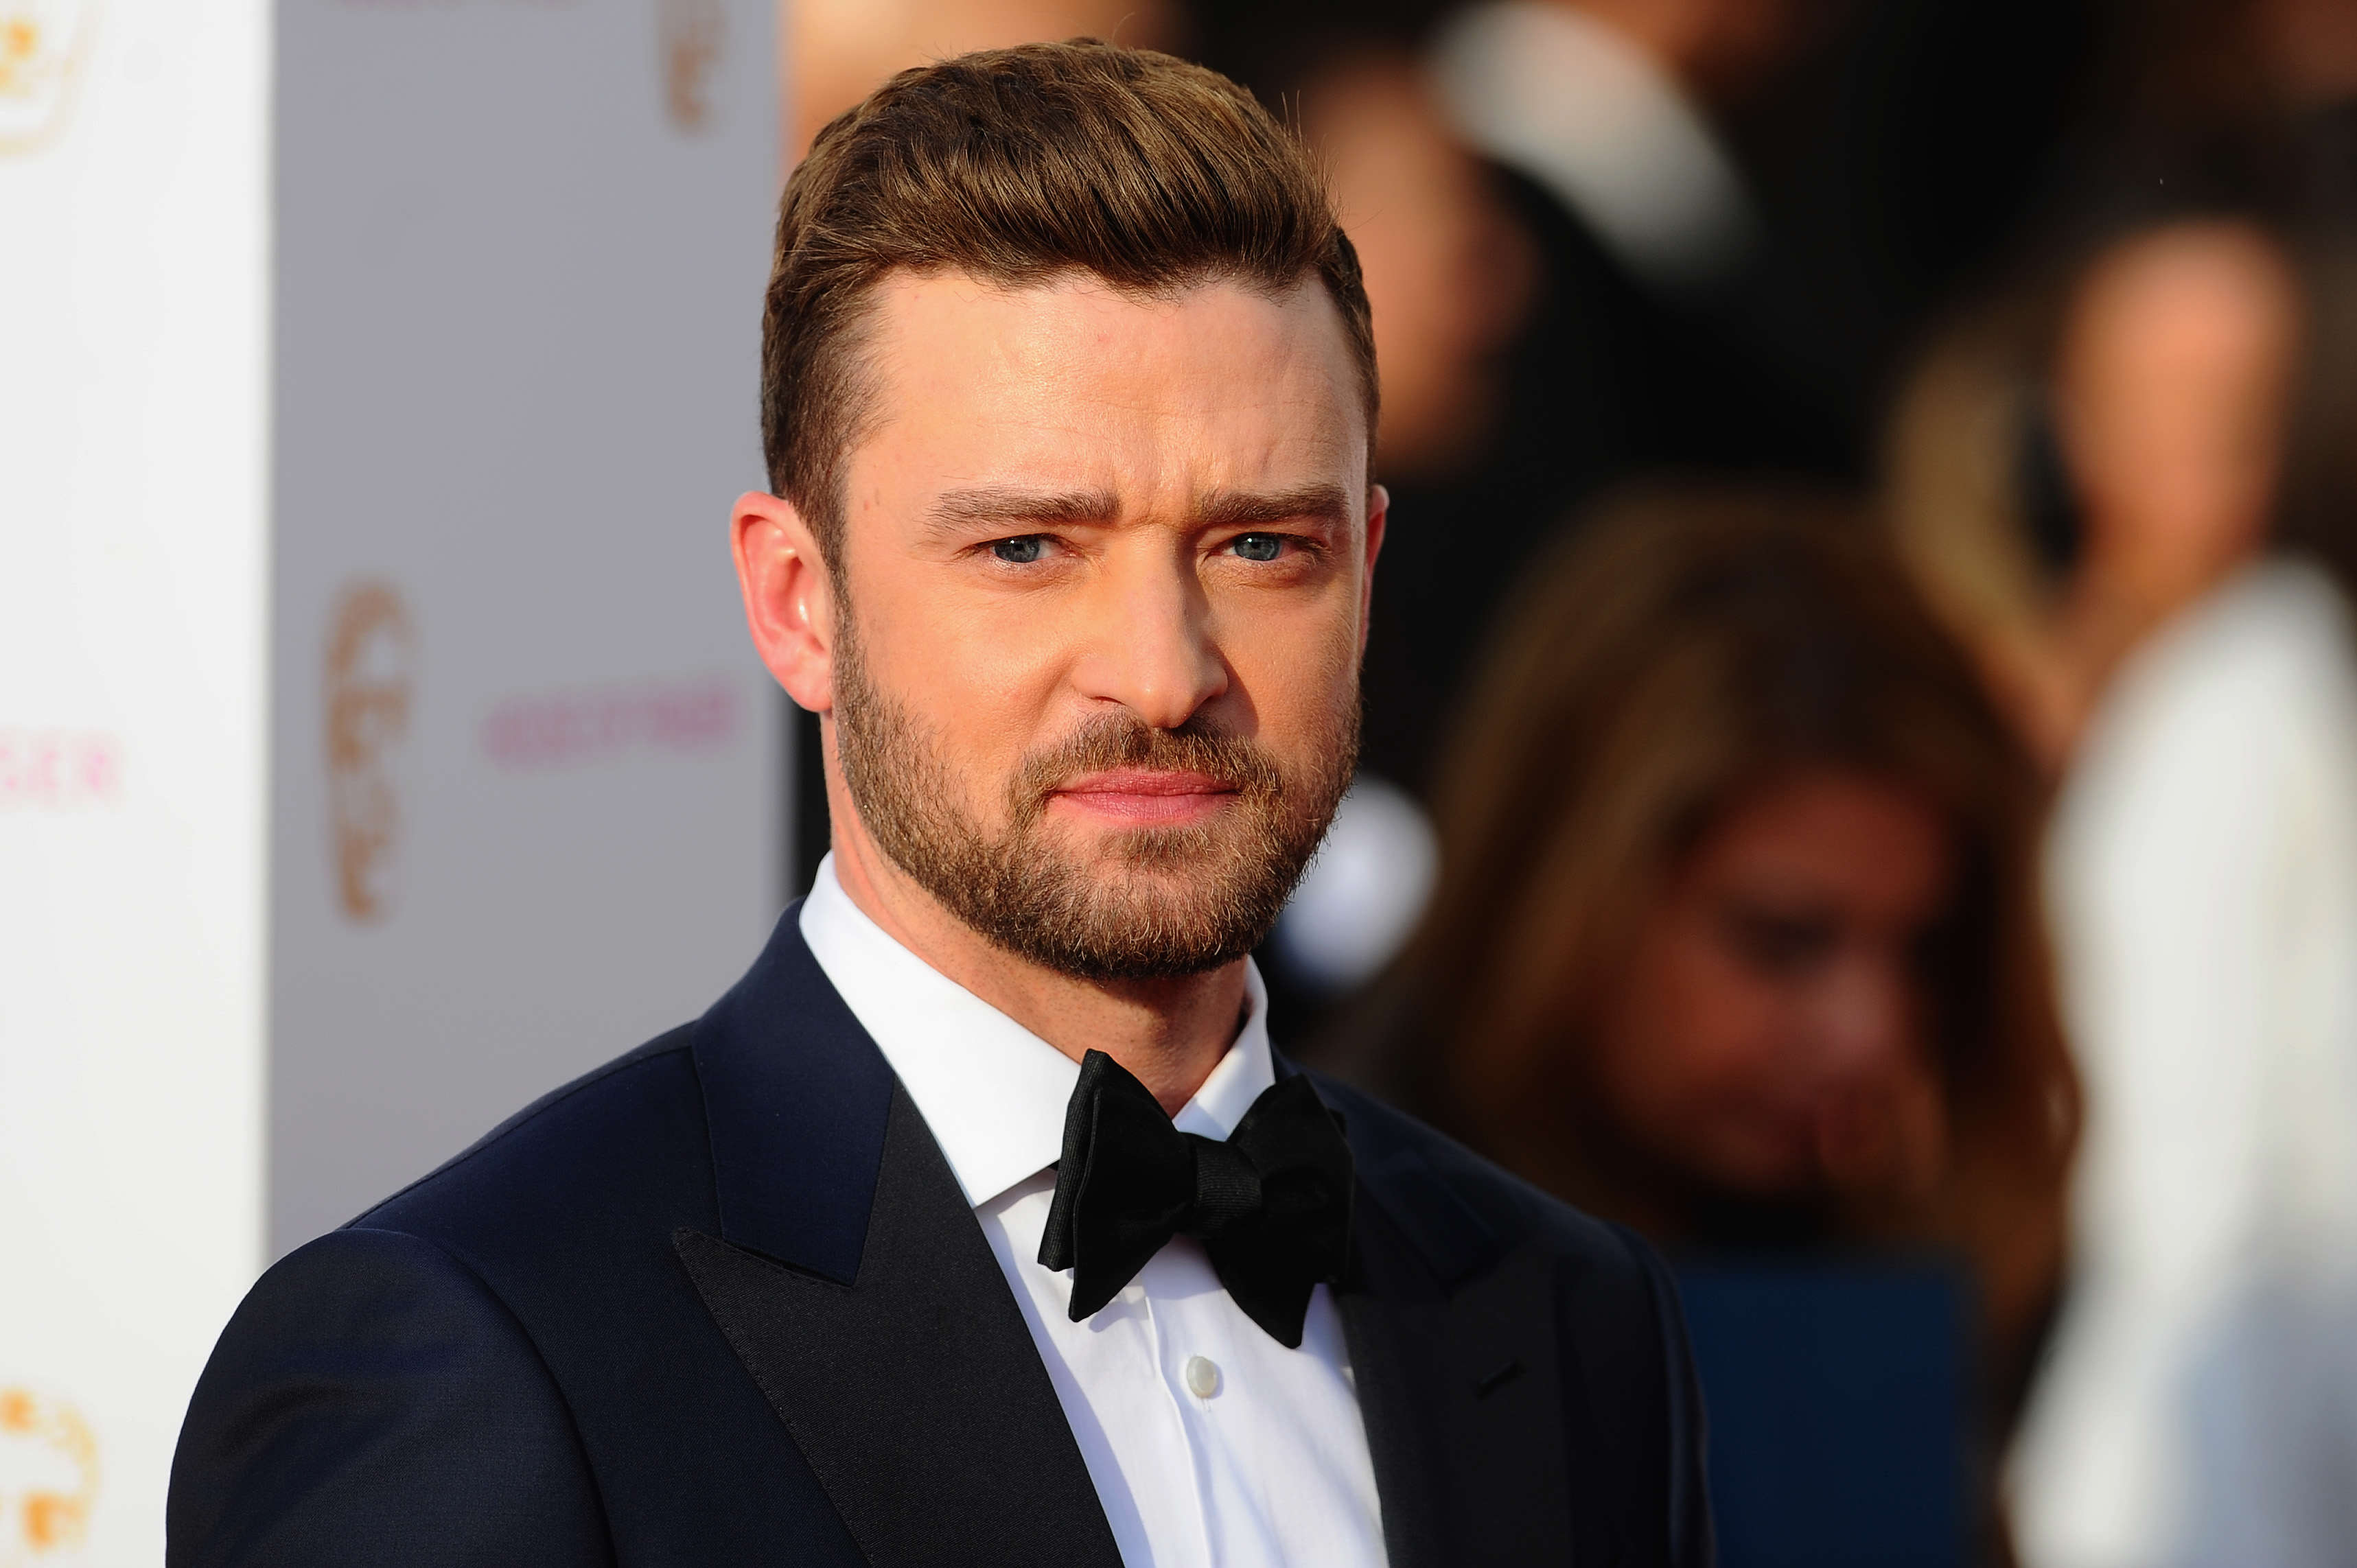 Justin Timberlake Slammed On Twitter For Controversial Black Appropriation Tweet GettyImages 529435244